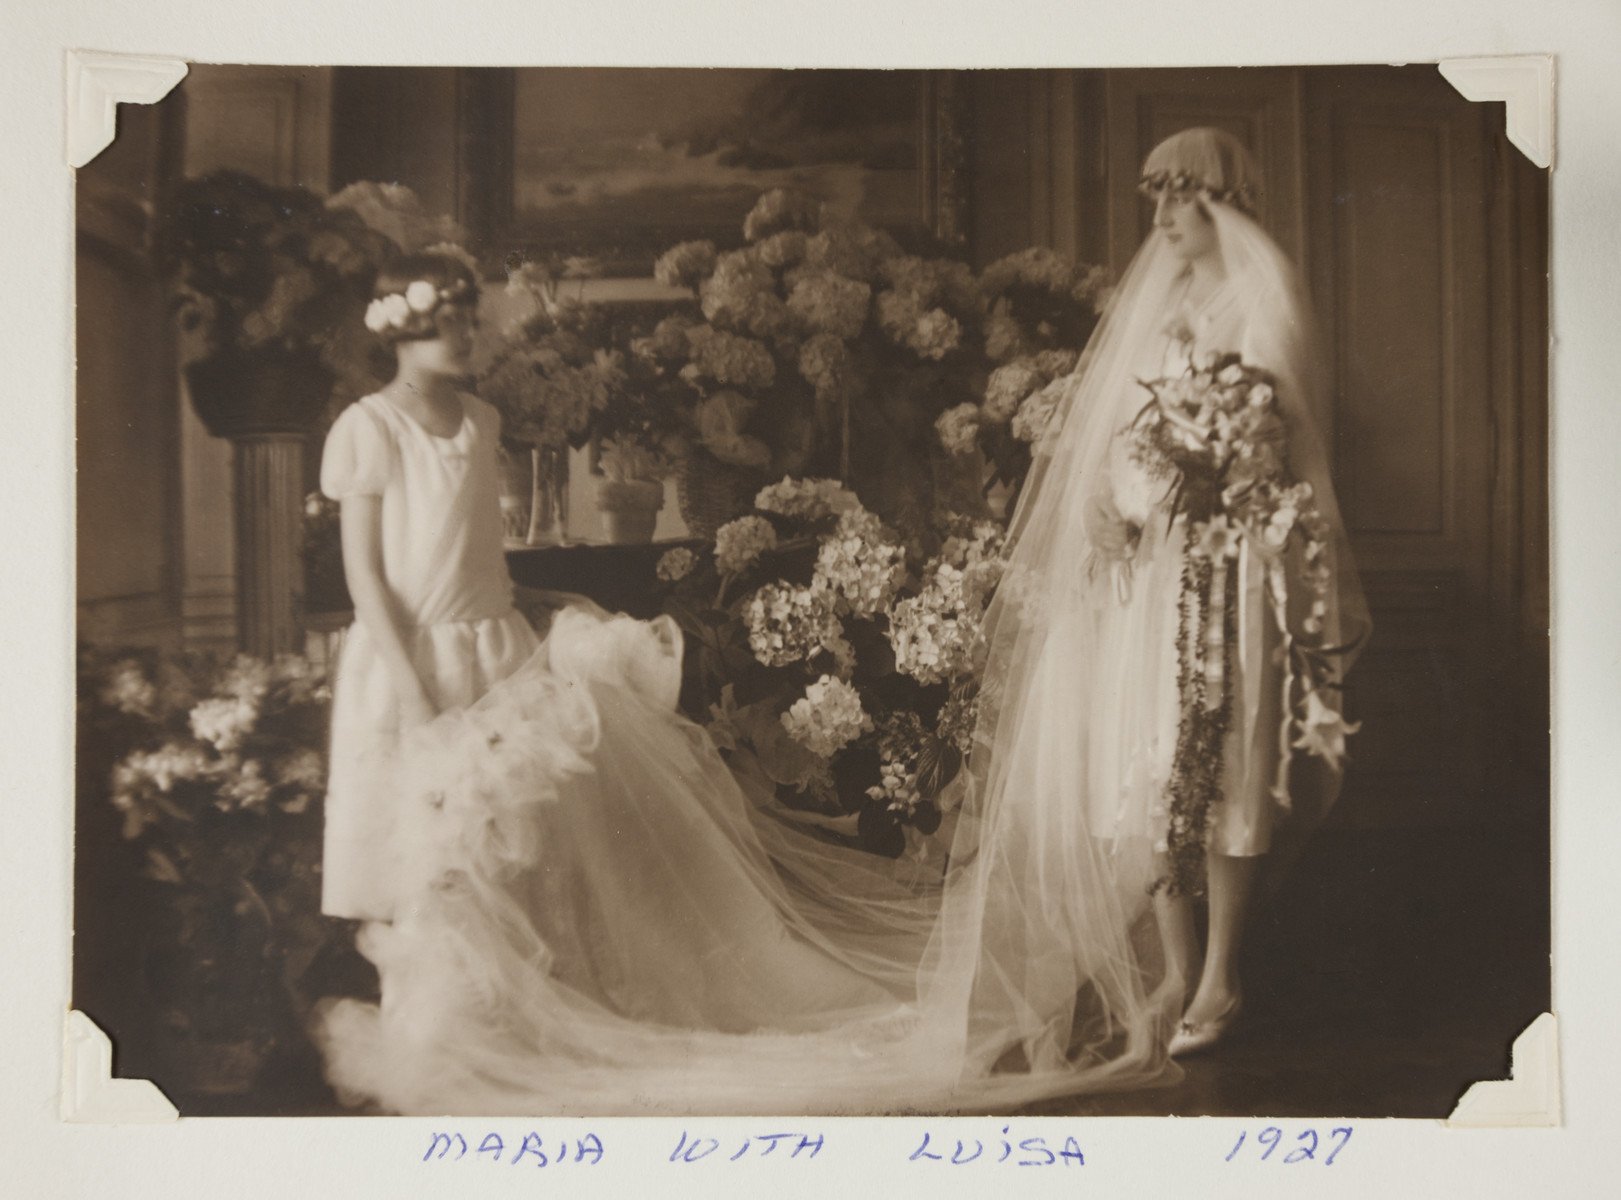 Maria and Luise Bloch-Bauer (later Guttmann) pose for a photograph on the occasion of Luise's wedding.